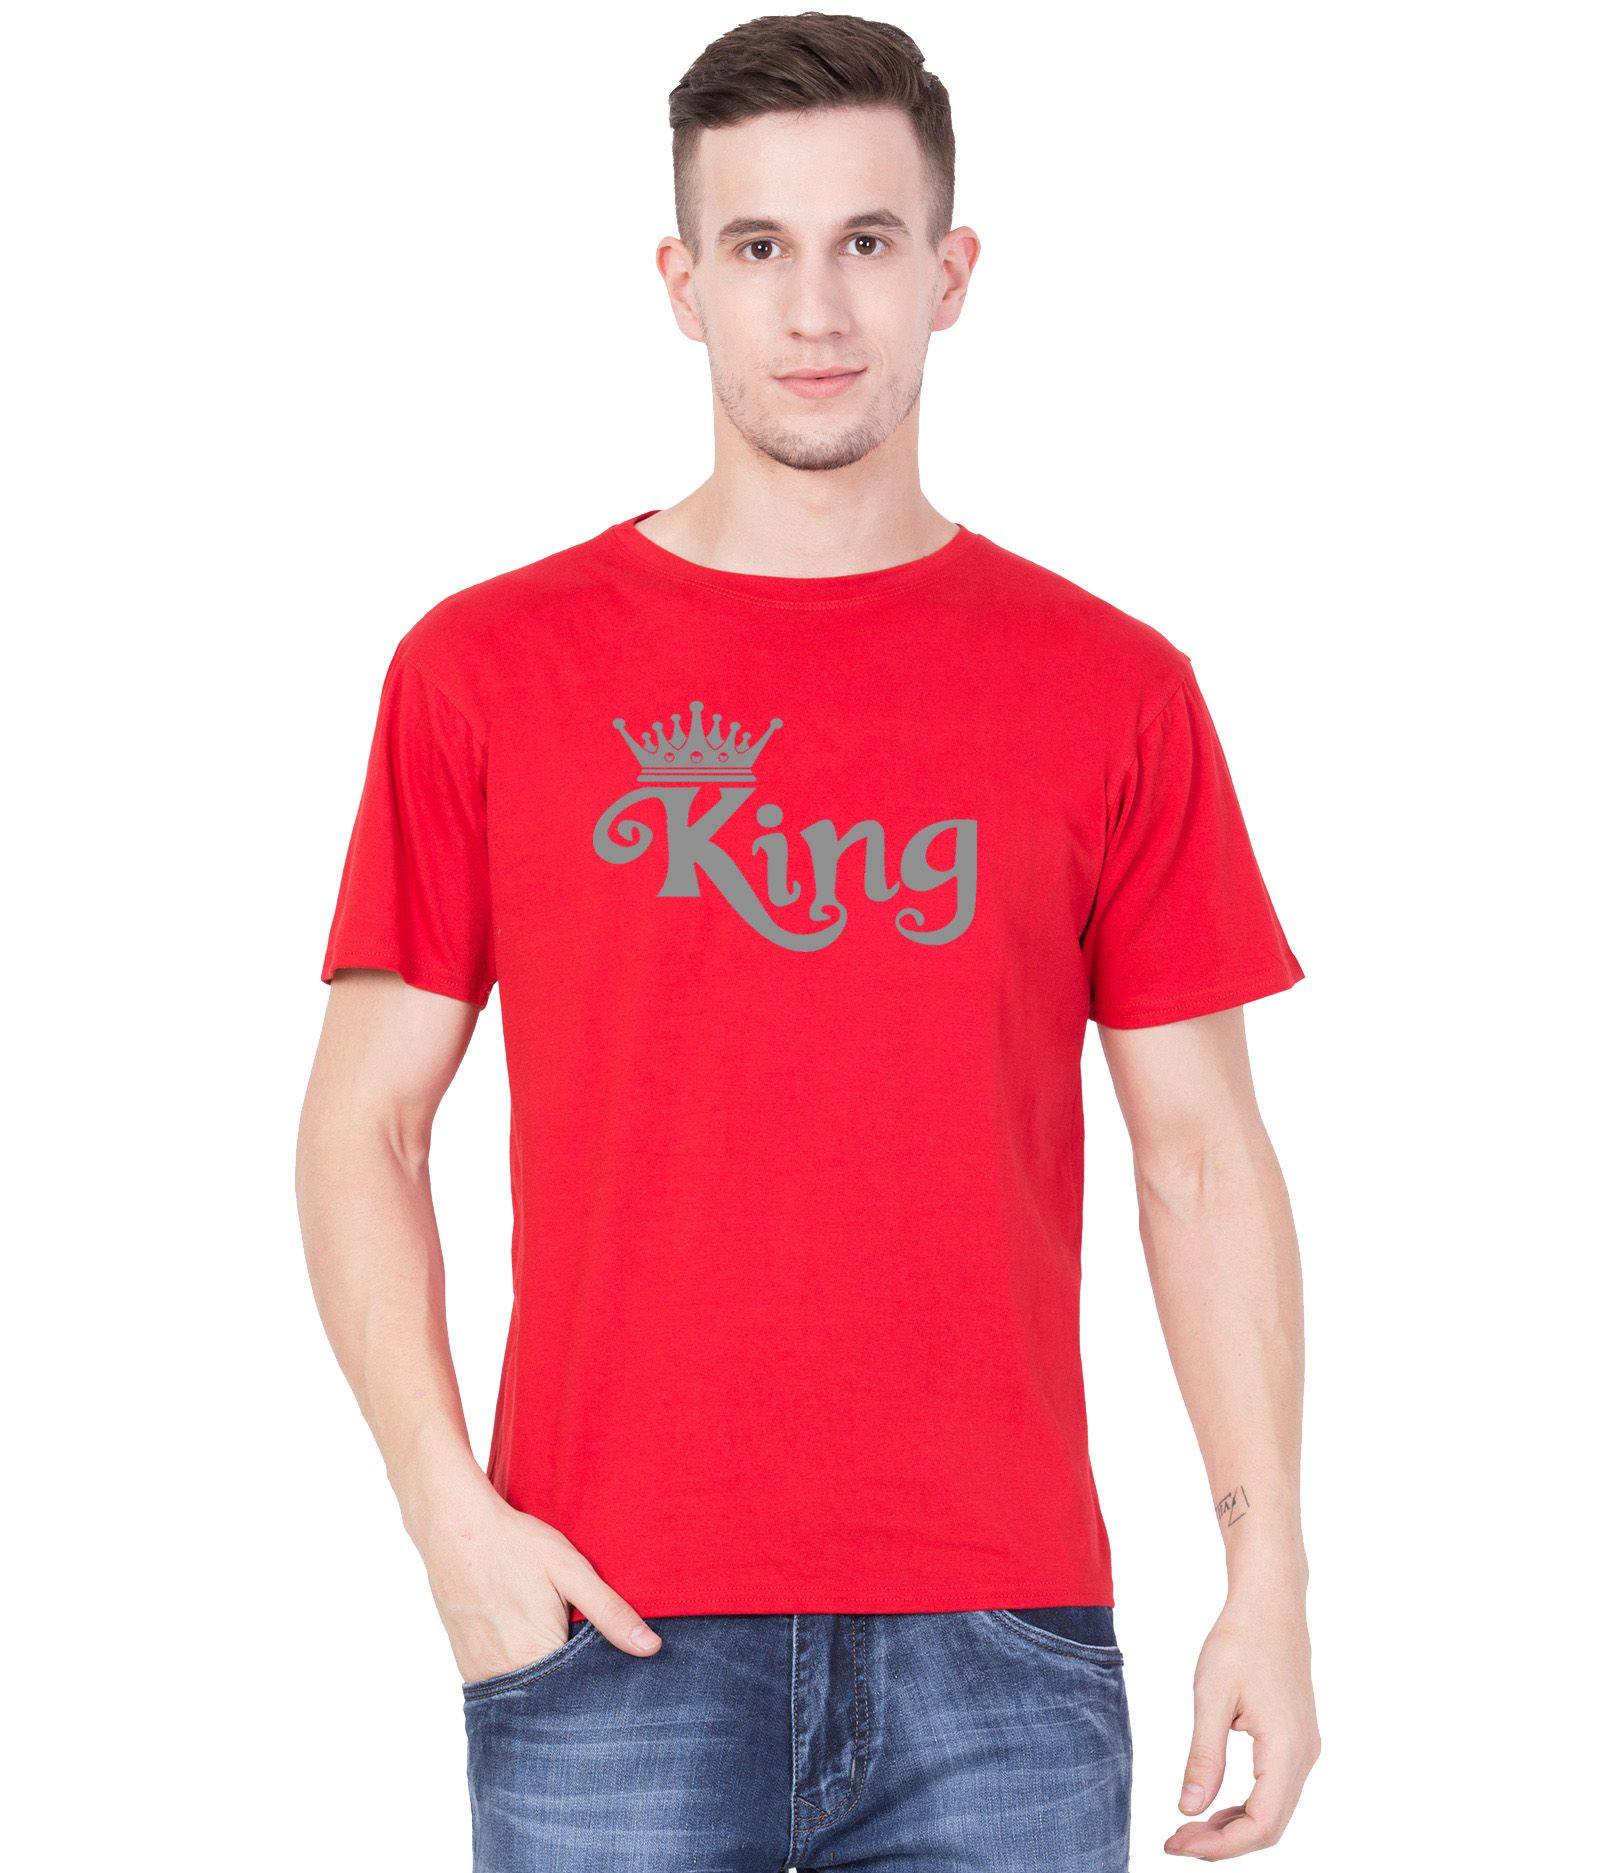 American-Elm Red Round T-Shirt Pack of 1